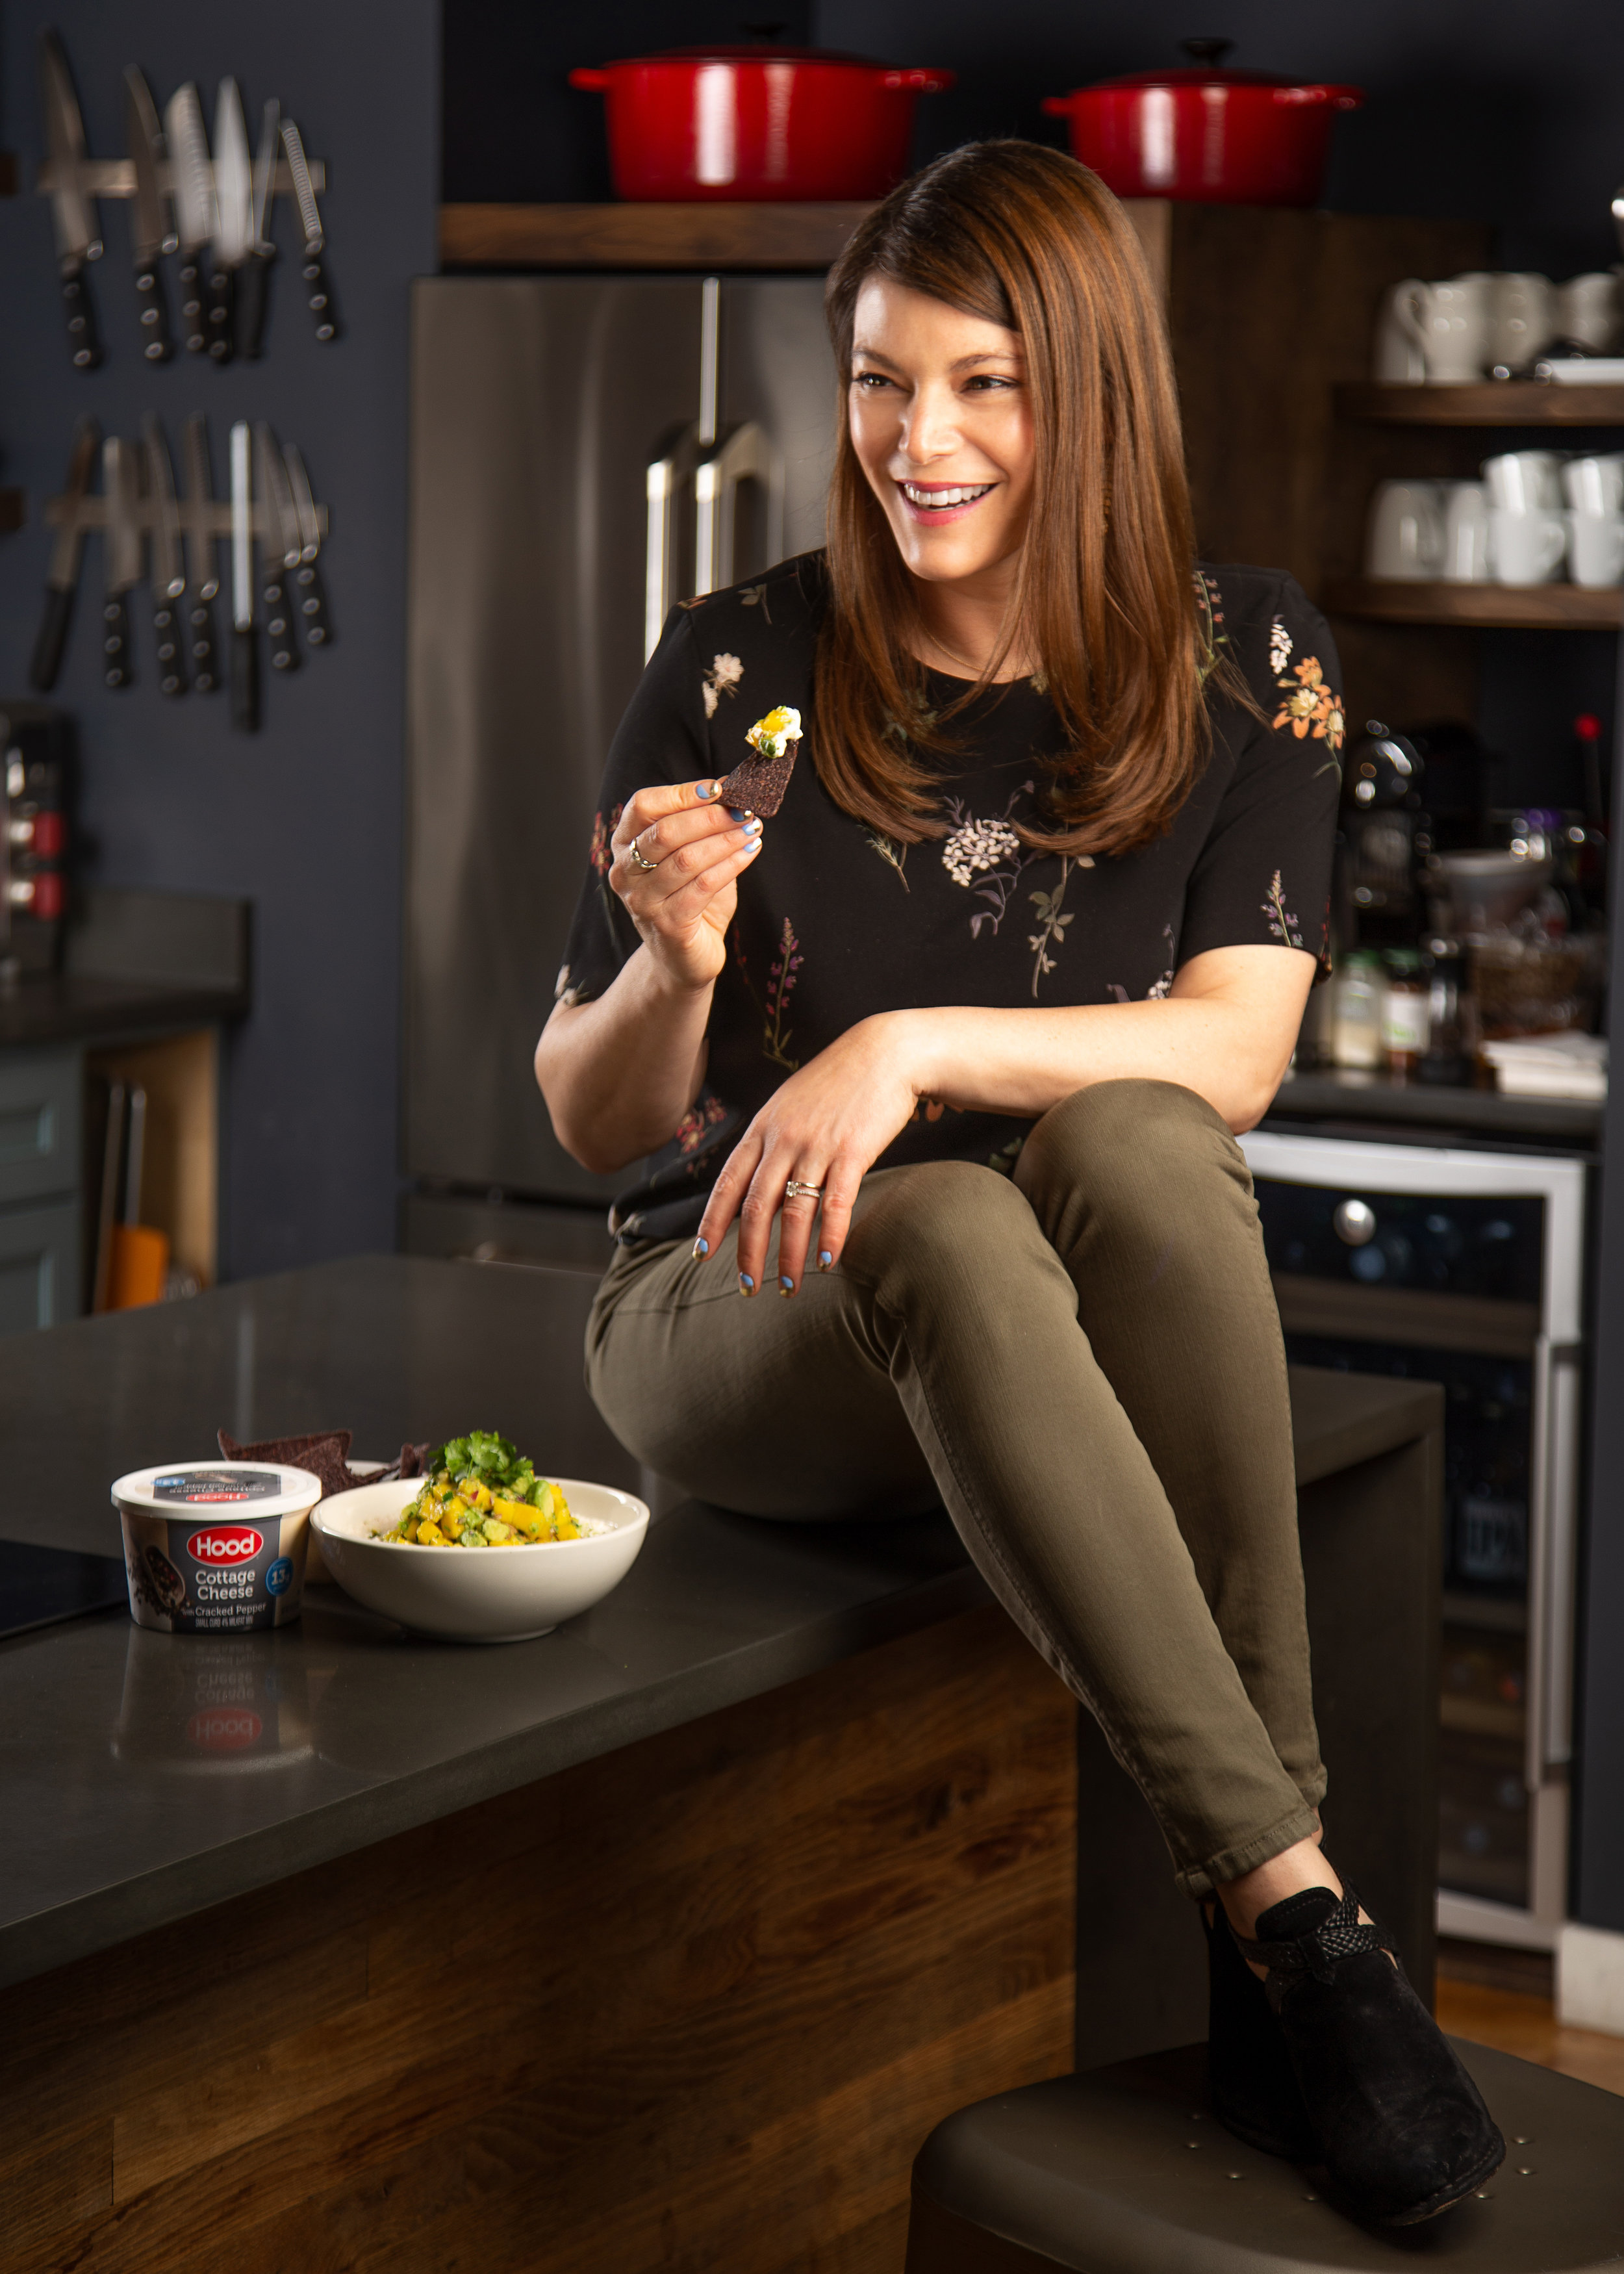 190410_Mbooth_GailSimmons5167.jpg